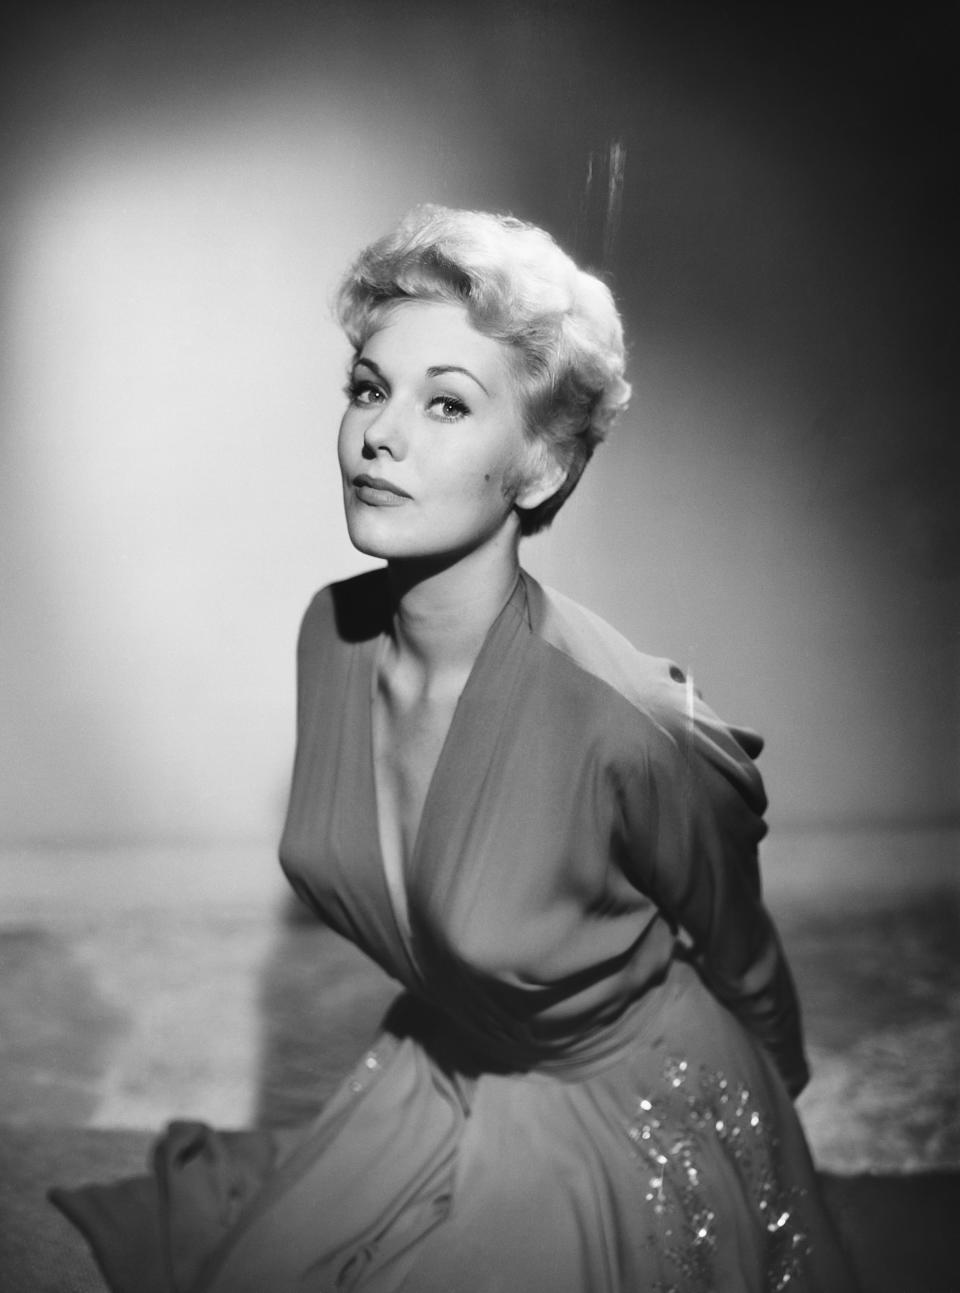 Actress Kim Novak (pictured in 1954) said she experienced severe online bullying after having fat injections in her face in 2014 (Photo by © Hulton-Deutsch Collection/CORBIS/Corbis via Getty Images)